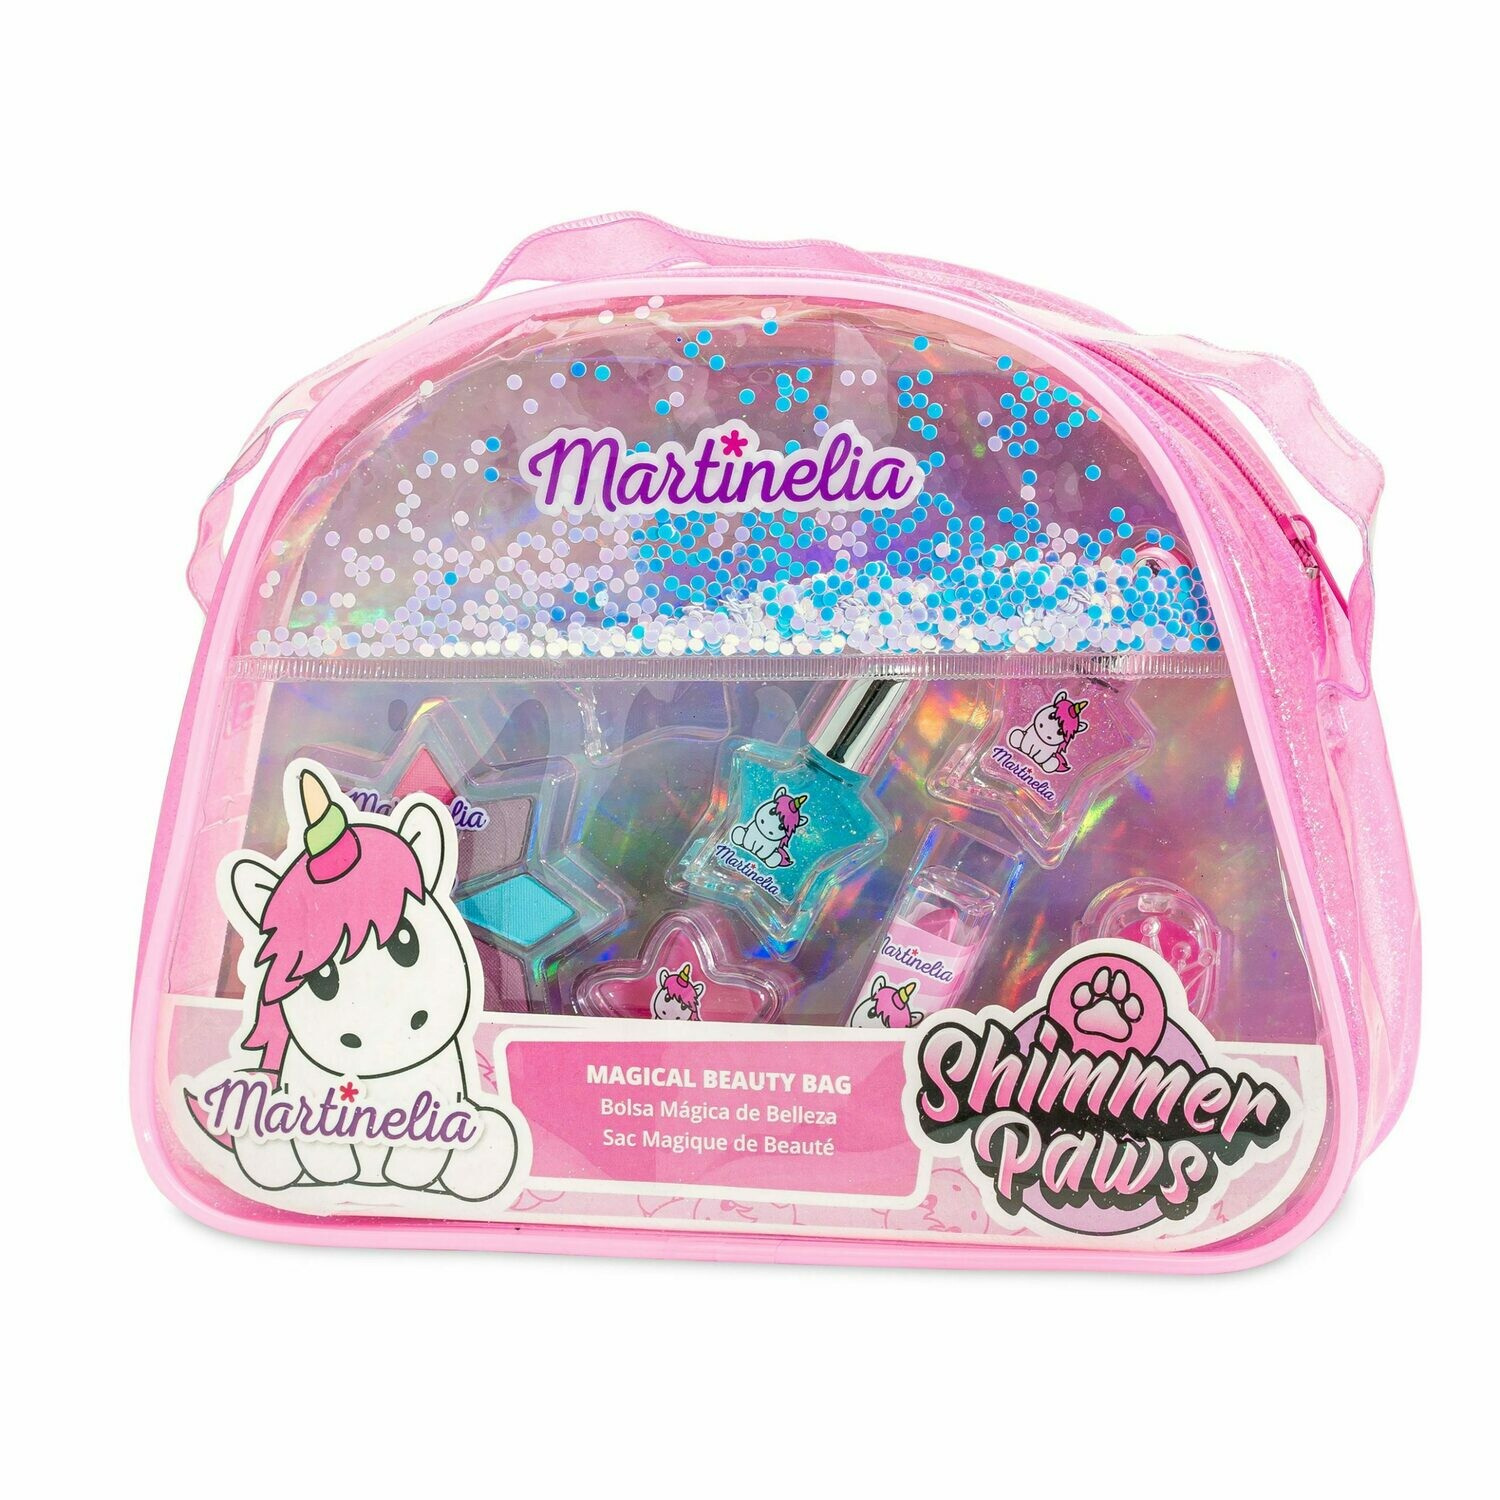 Martinelia Shimmer Paws Magical Beauty Bag Unicorn